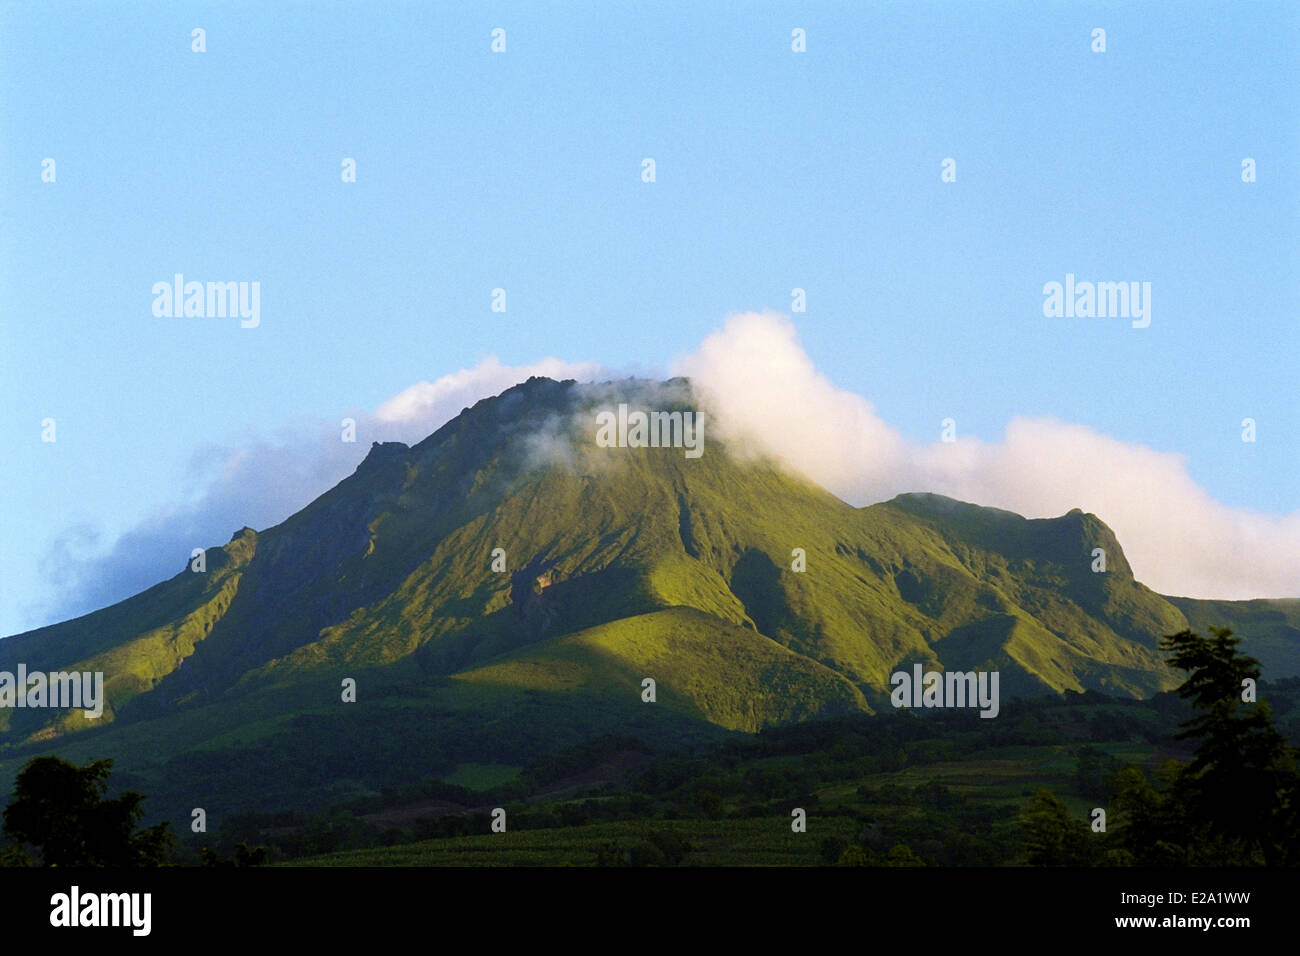 France, Martinique (French West Indies), Morne Rouge, The volcano of Mount Pelee the highest point of Martinique - Stock Image